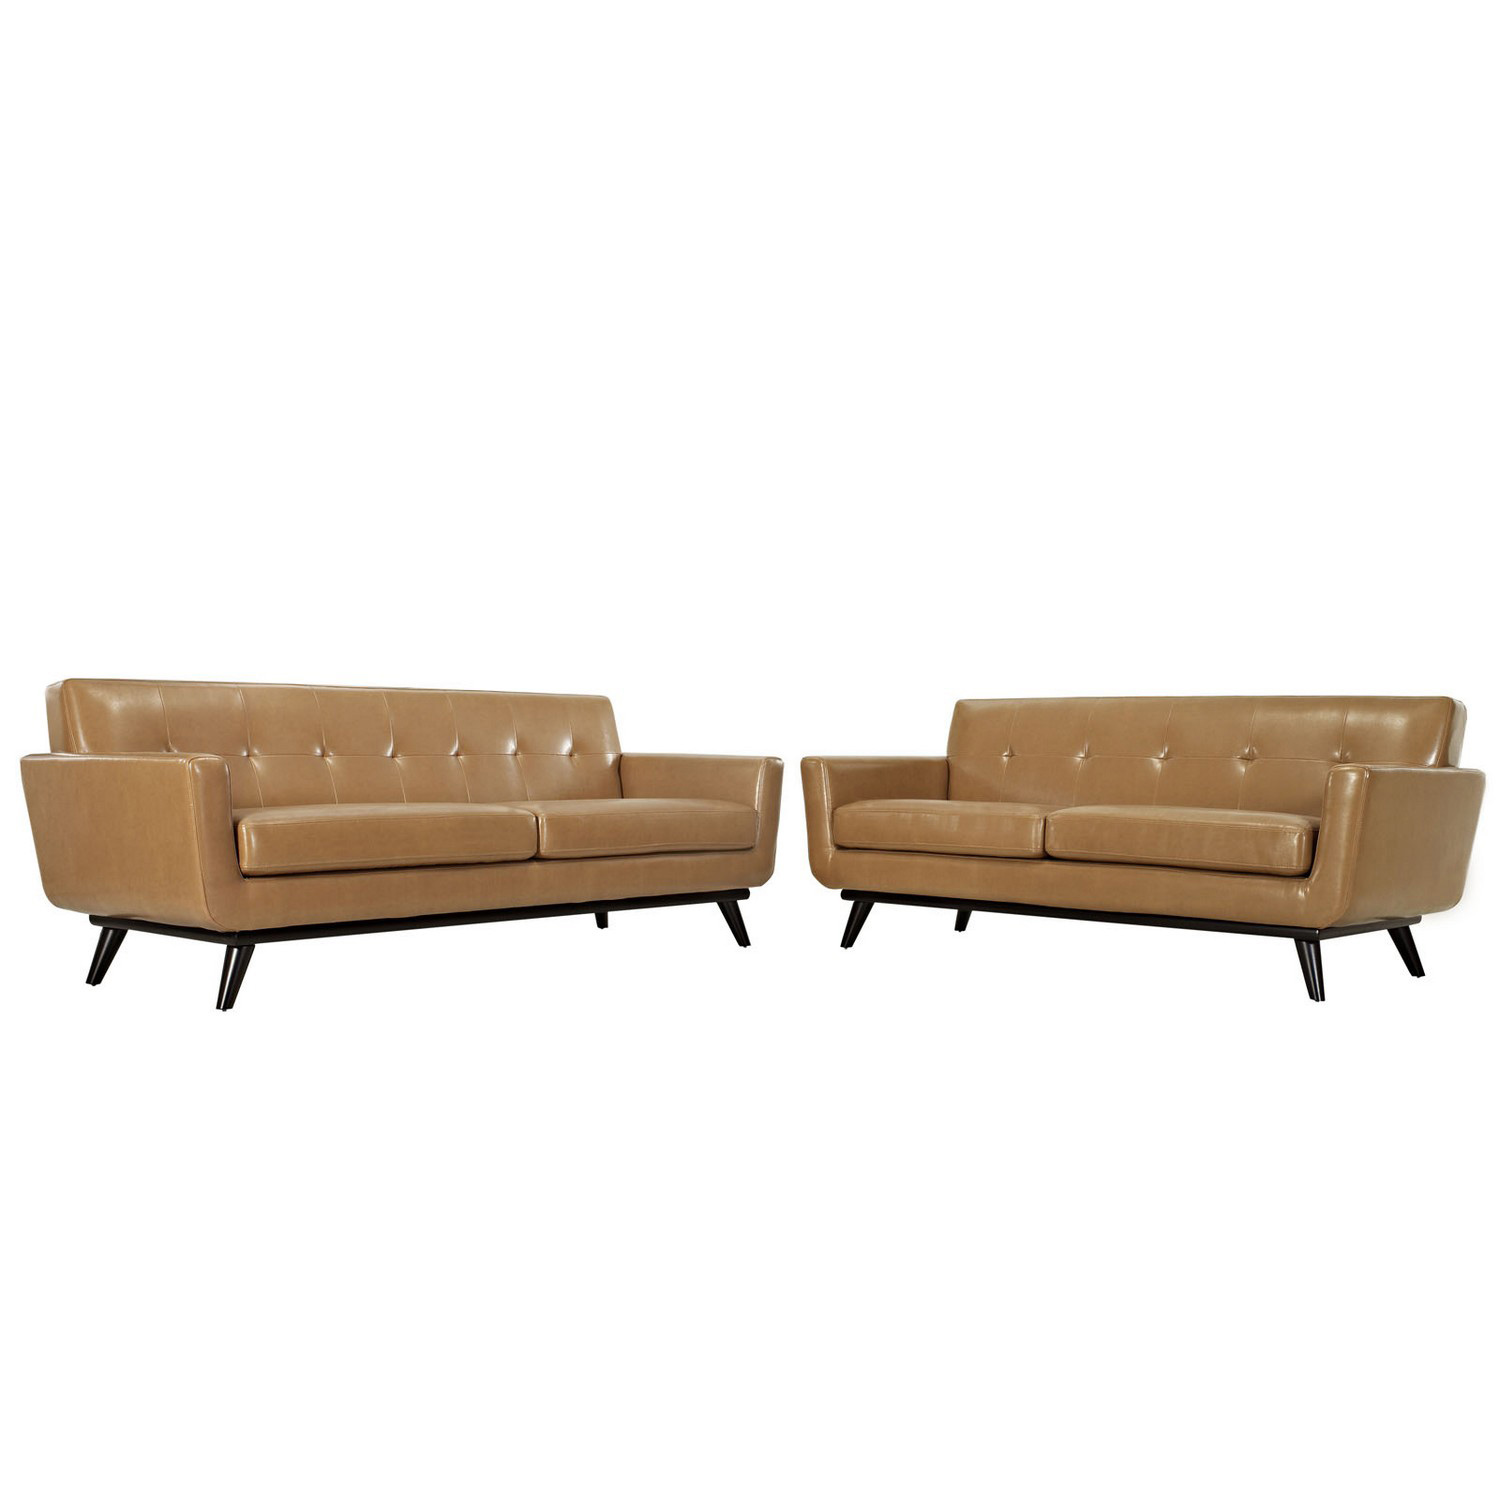 Modway Engage 2 Piece Leather Living Room Set - Tan